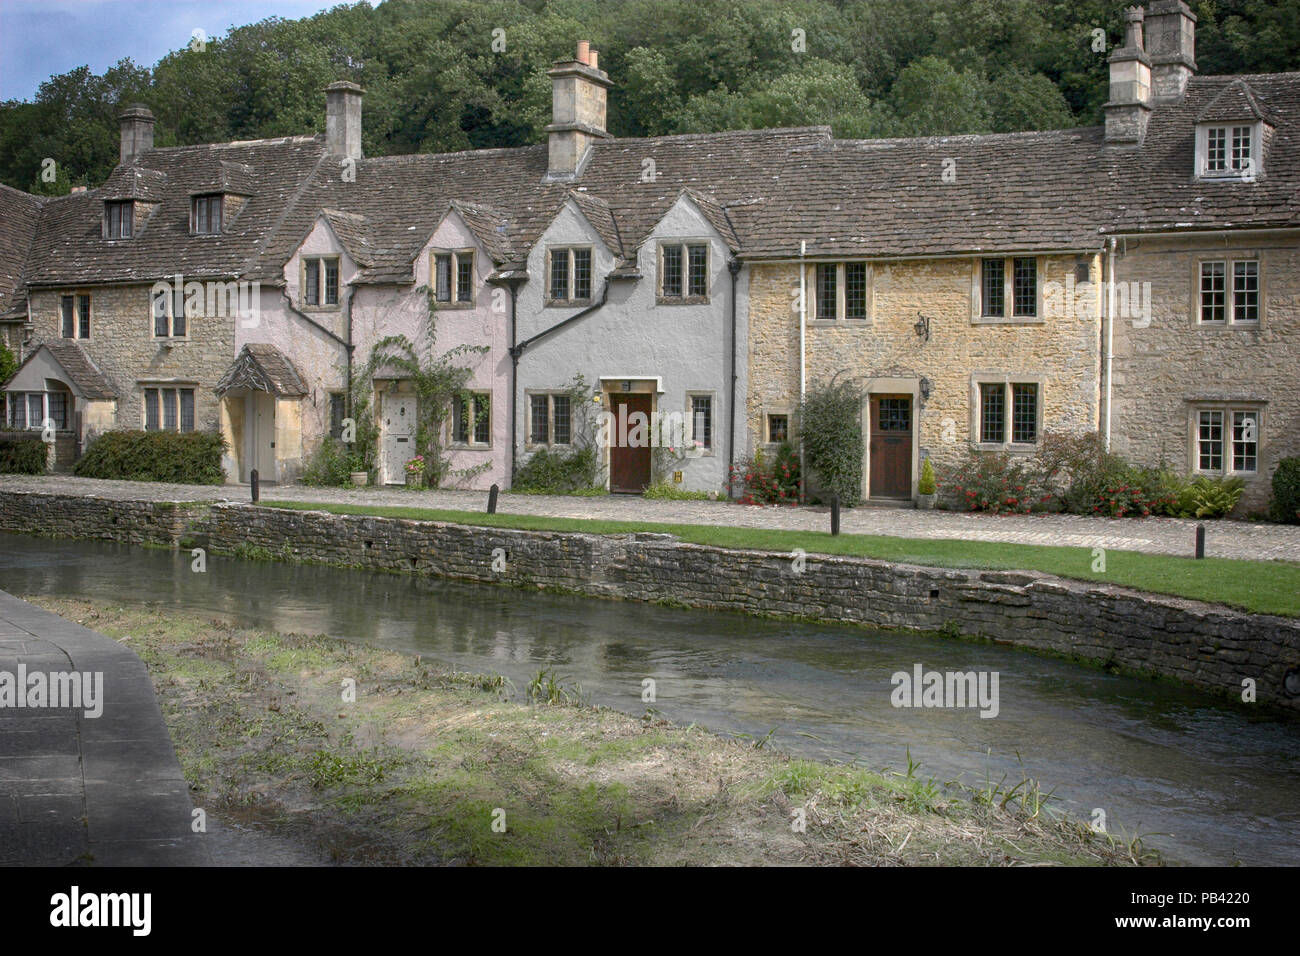 Castle Coombe - Waar Horse location - Stock Image